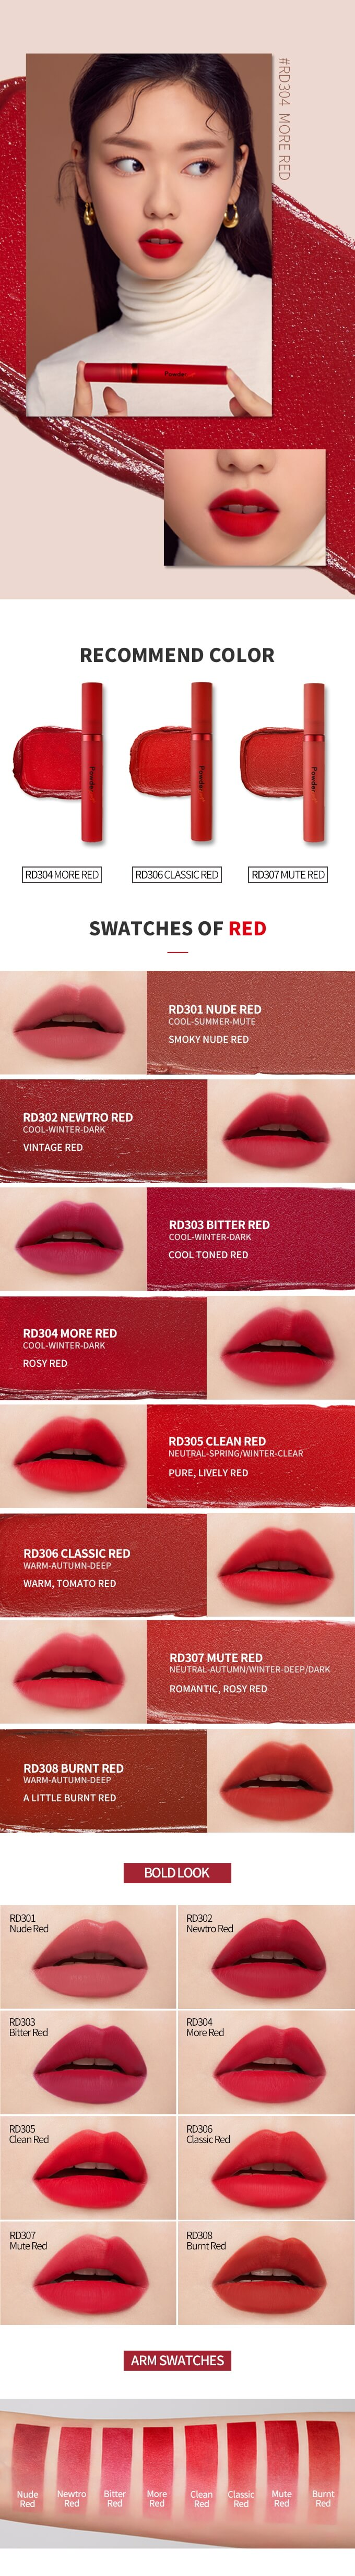 Etude House Powder Rouge Tint [#03 RD303 Bitter Red]